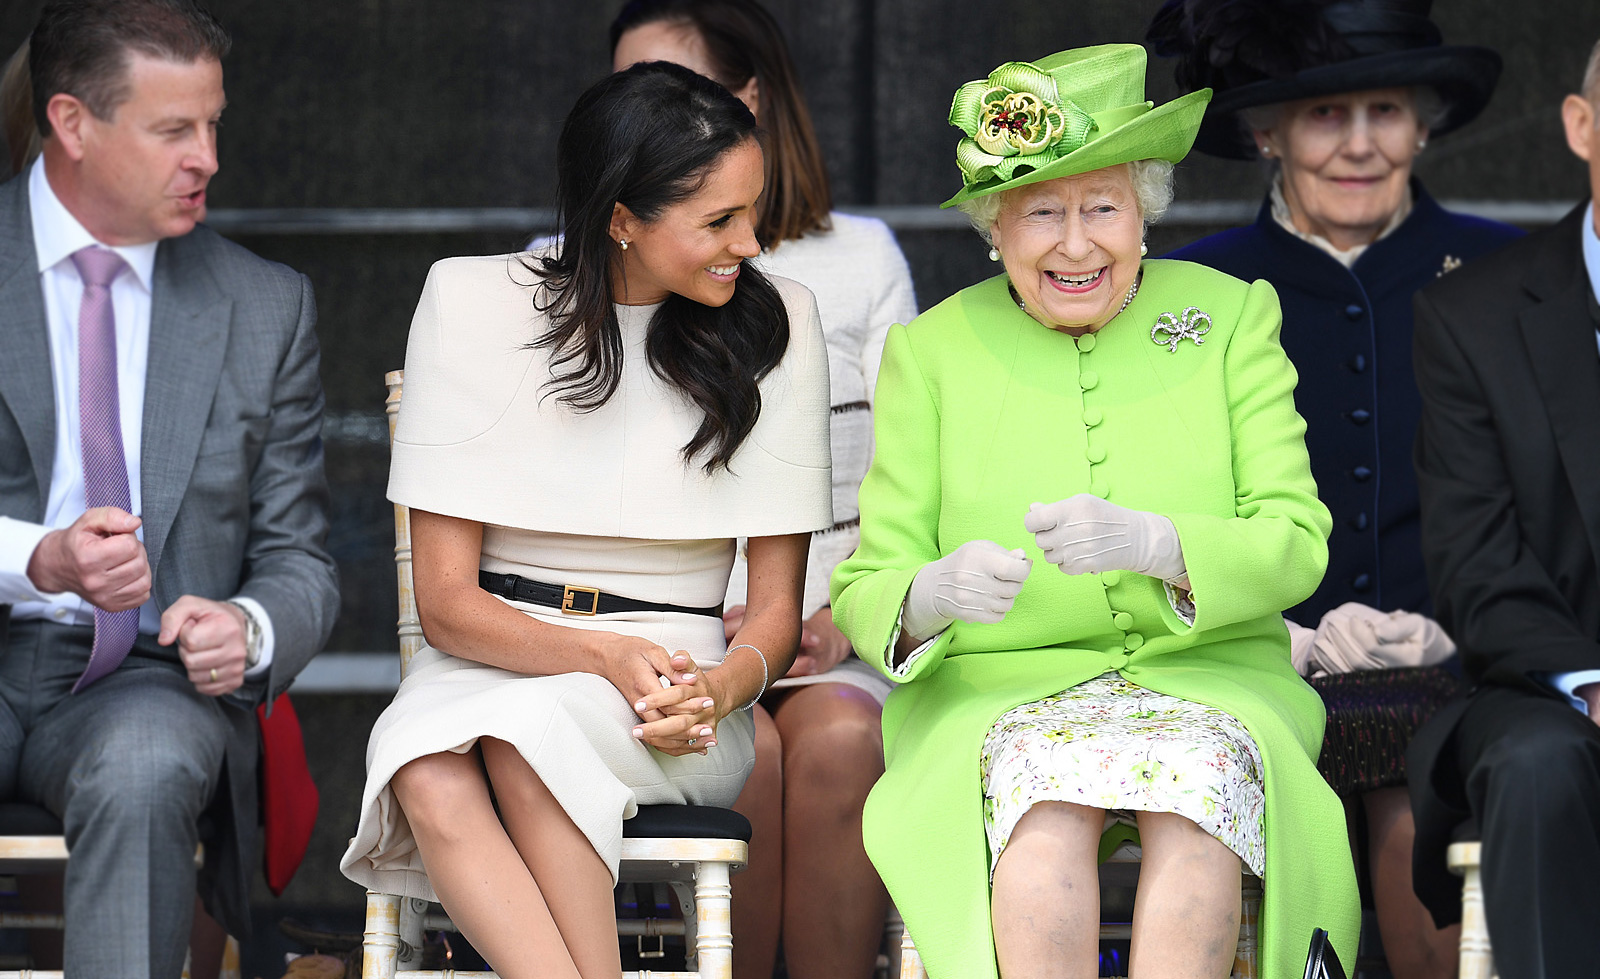 Duchess of Sussex and Her Majesty the Queen embarked on their very first official trip together, just the two of them, carrying out a full day of engagements in Chester, England on 14 June 2018.